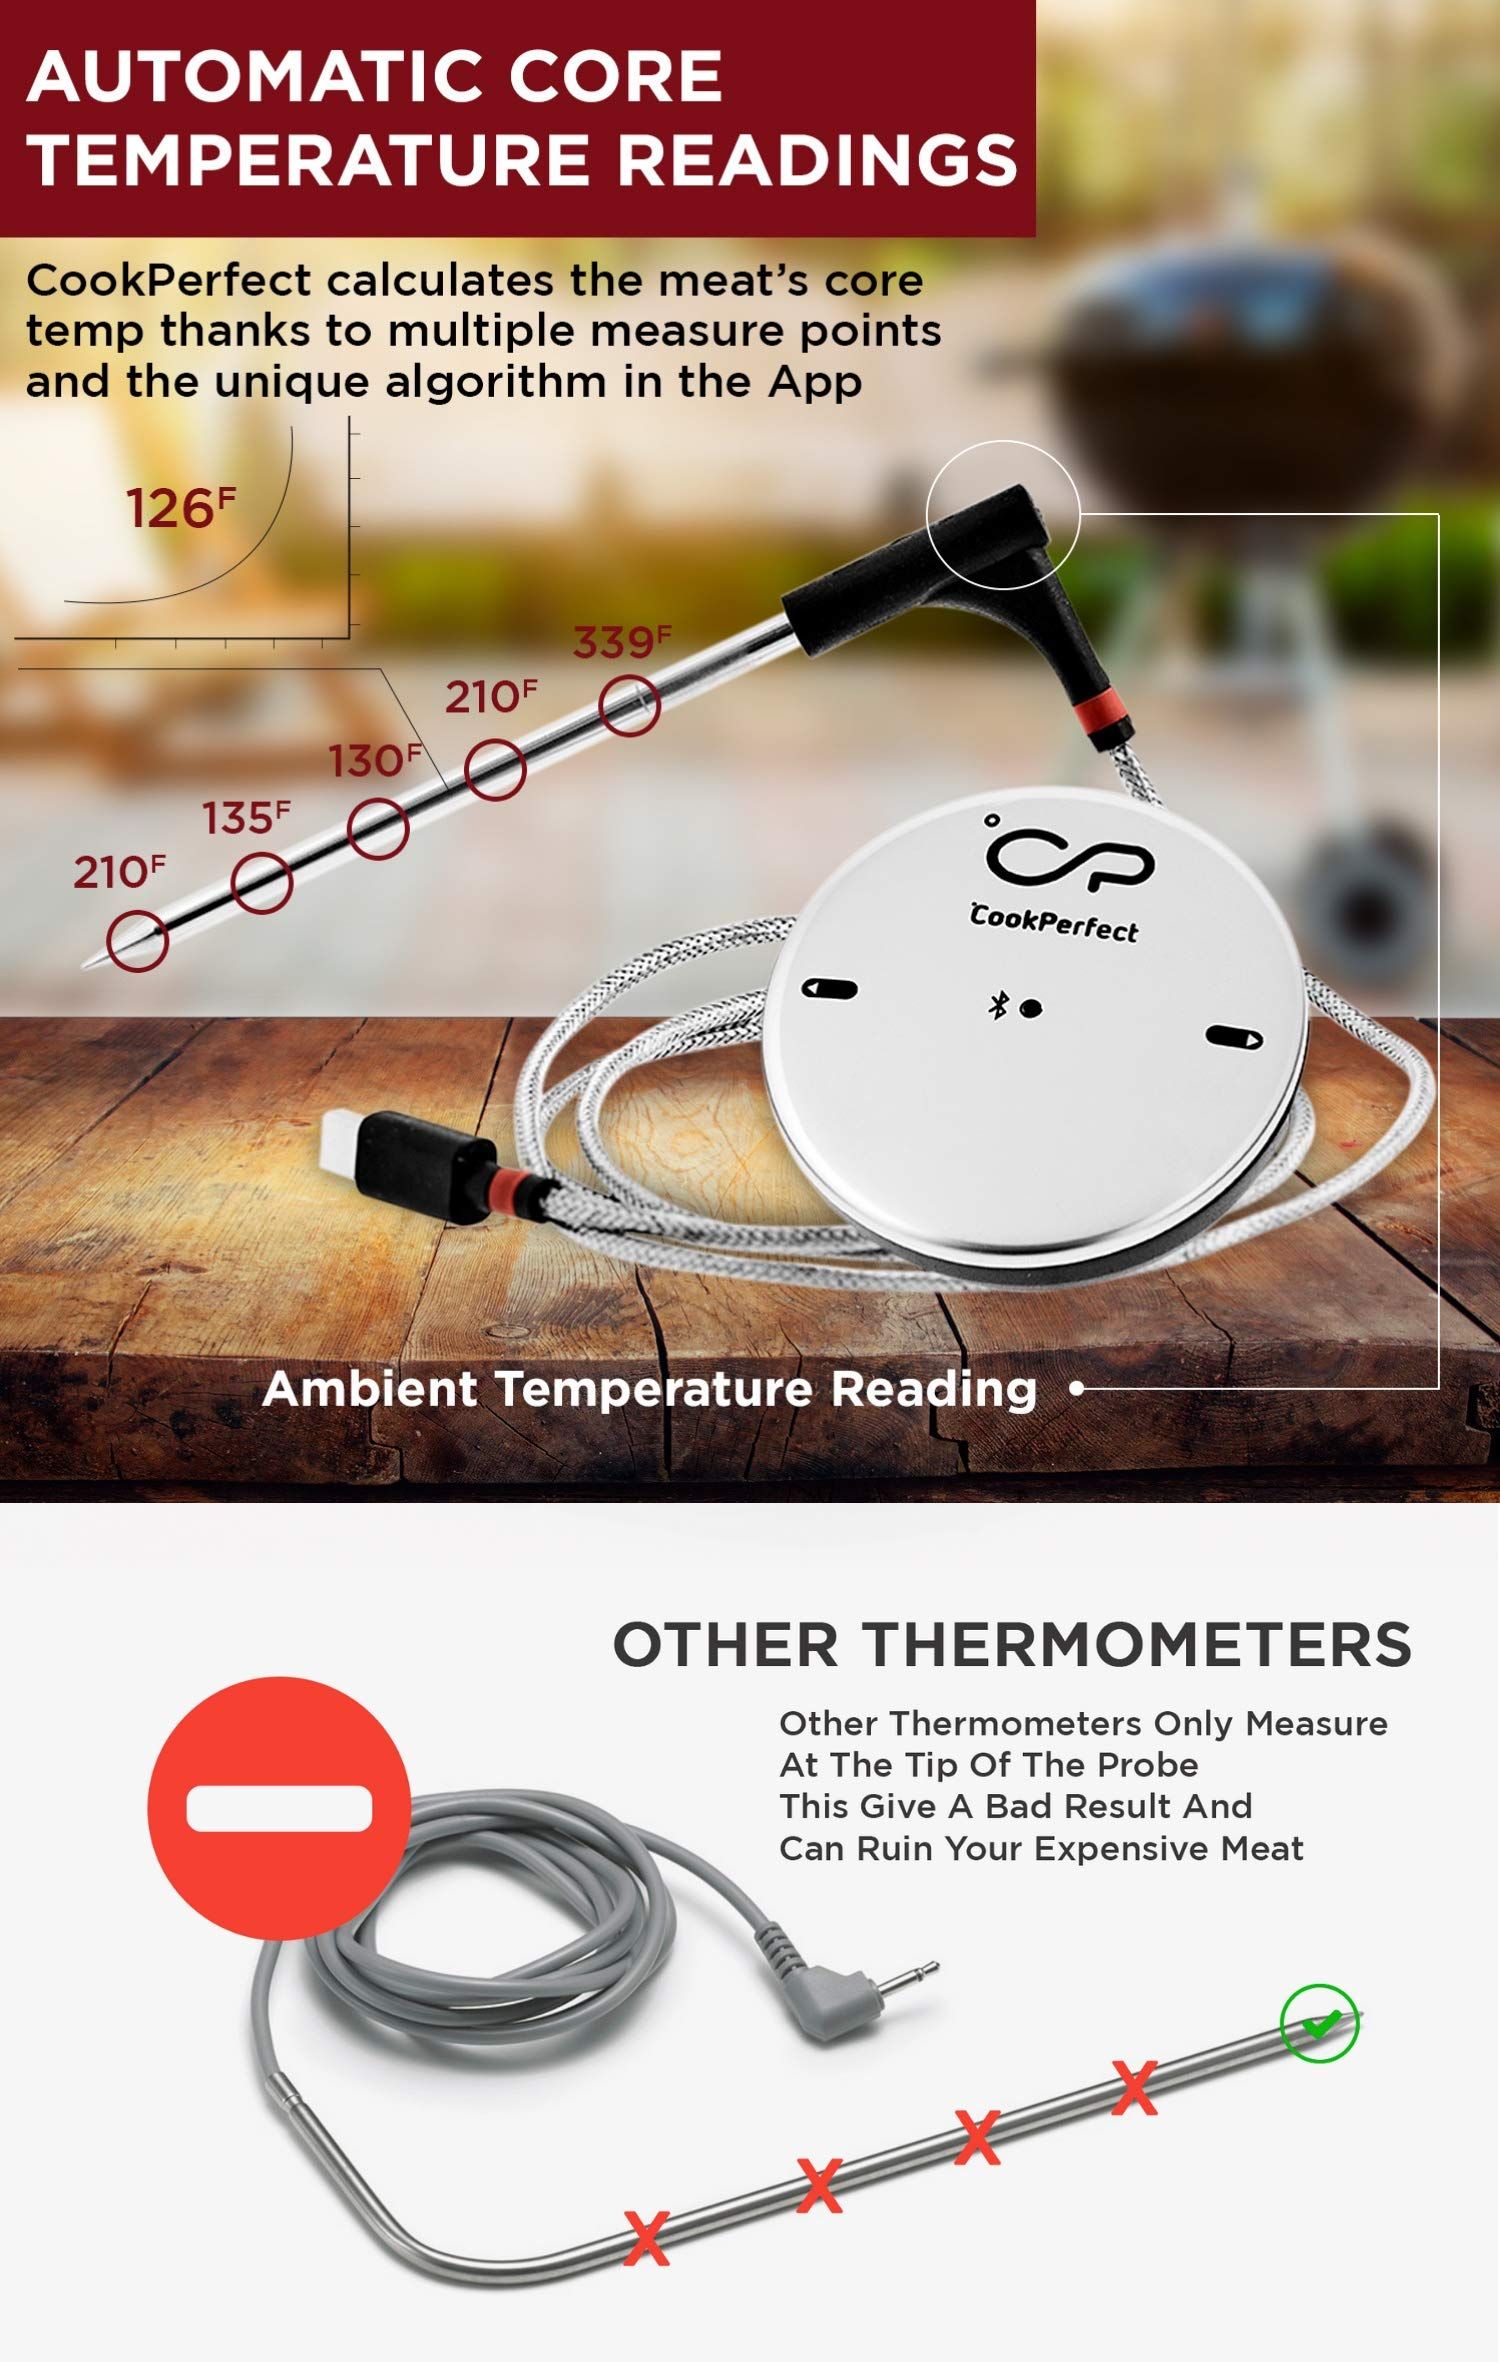 CookPerfect Wireless Meat Thermometer with 400ft Bluetooth Range | Automatic Core and Air Temperature Readings | for BBQ, Oven and Grill Cooking (1 Probe Included) by CookPerfect (Image #3)